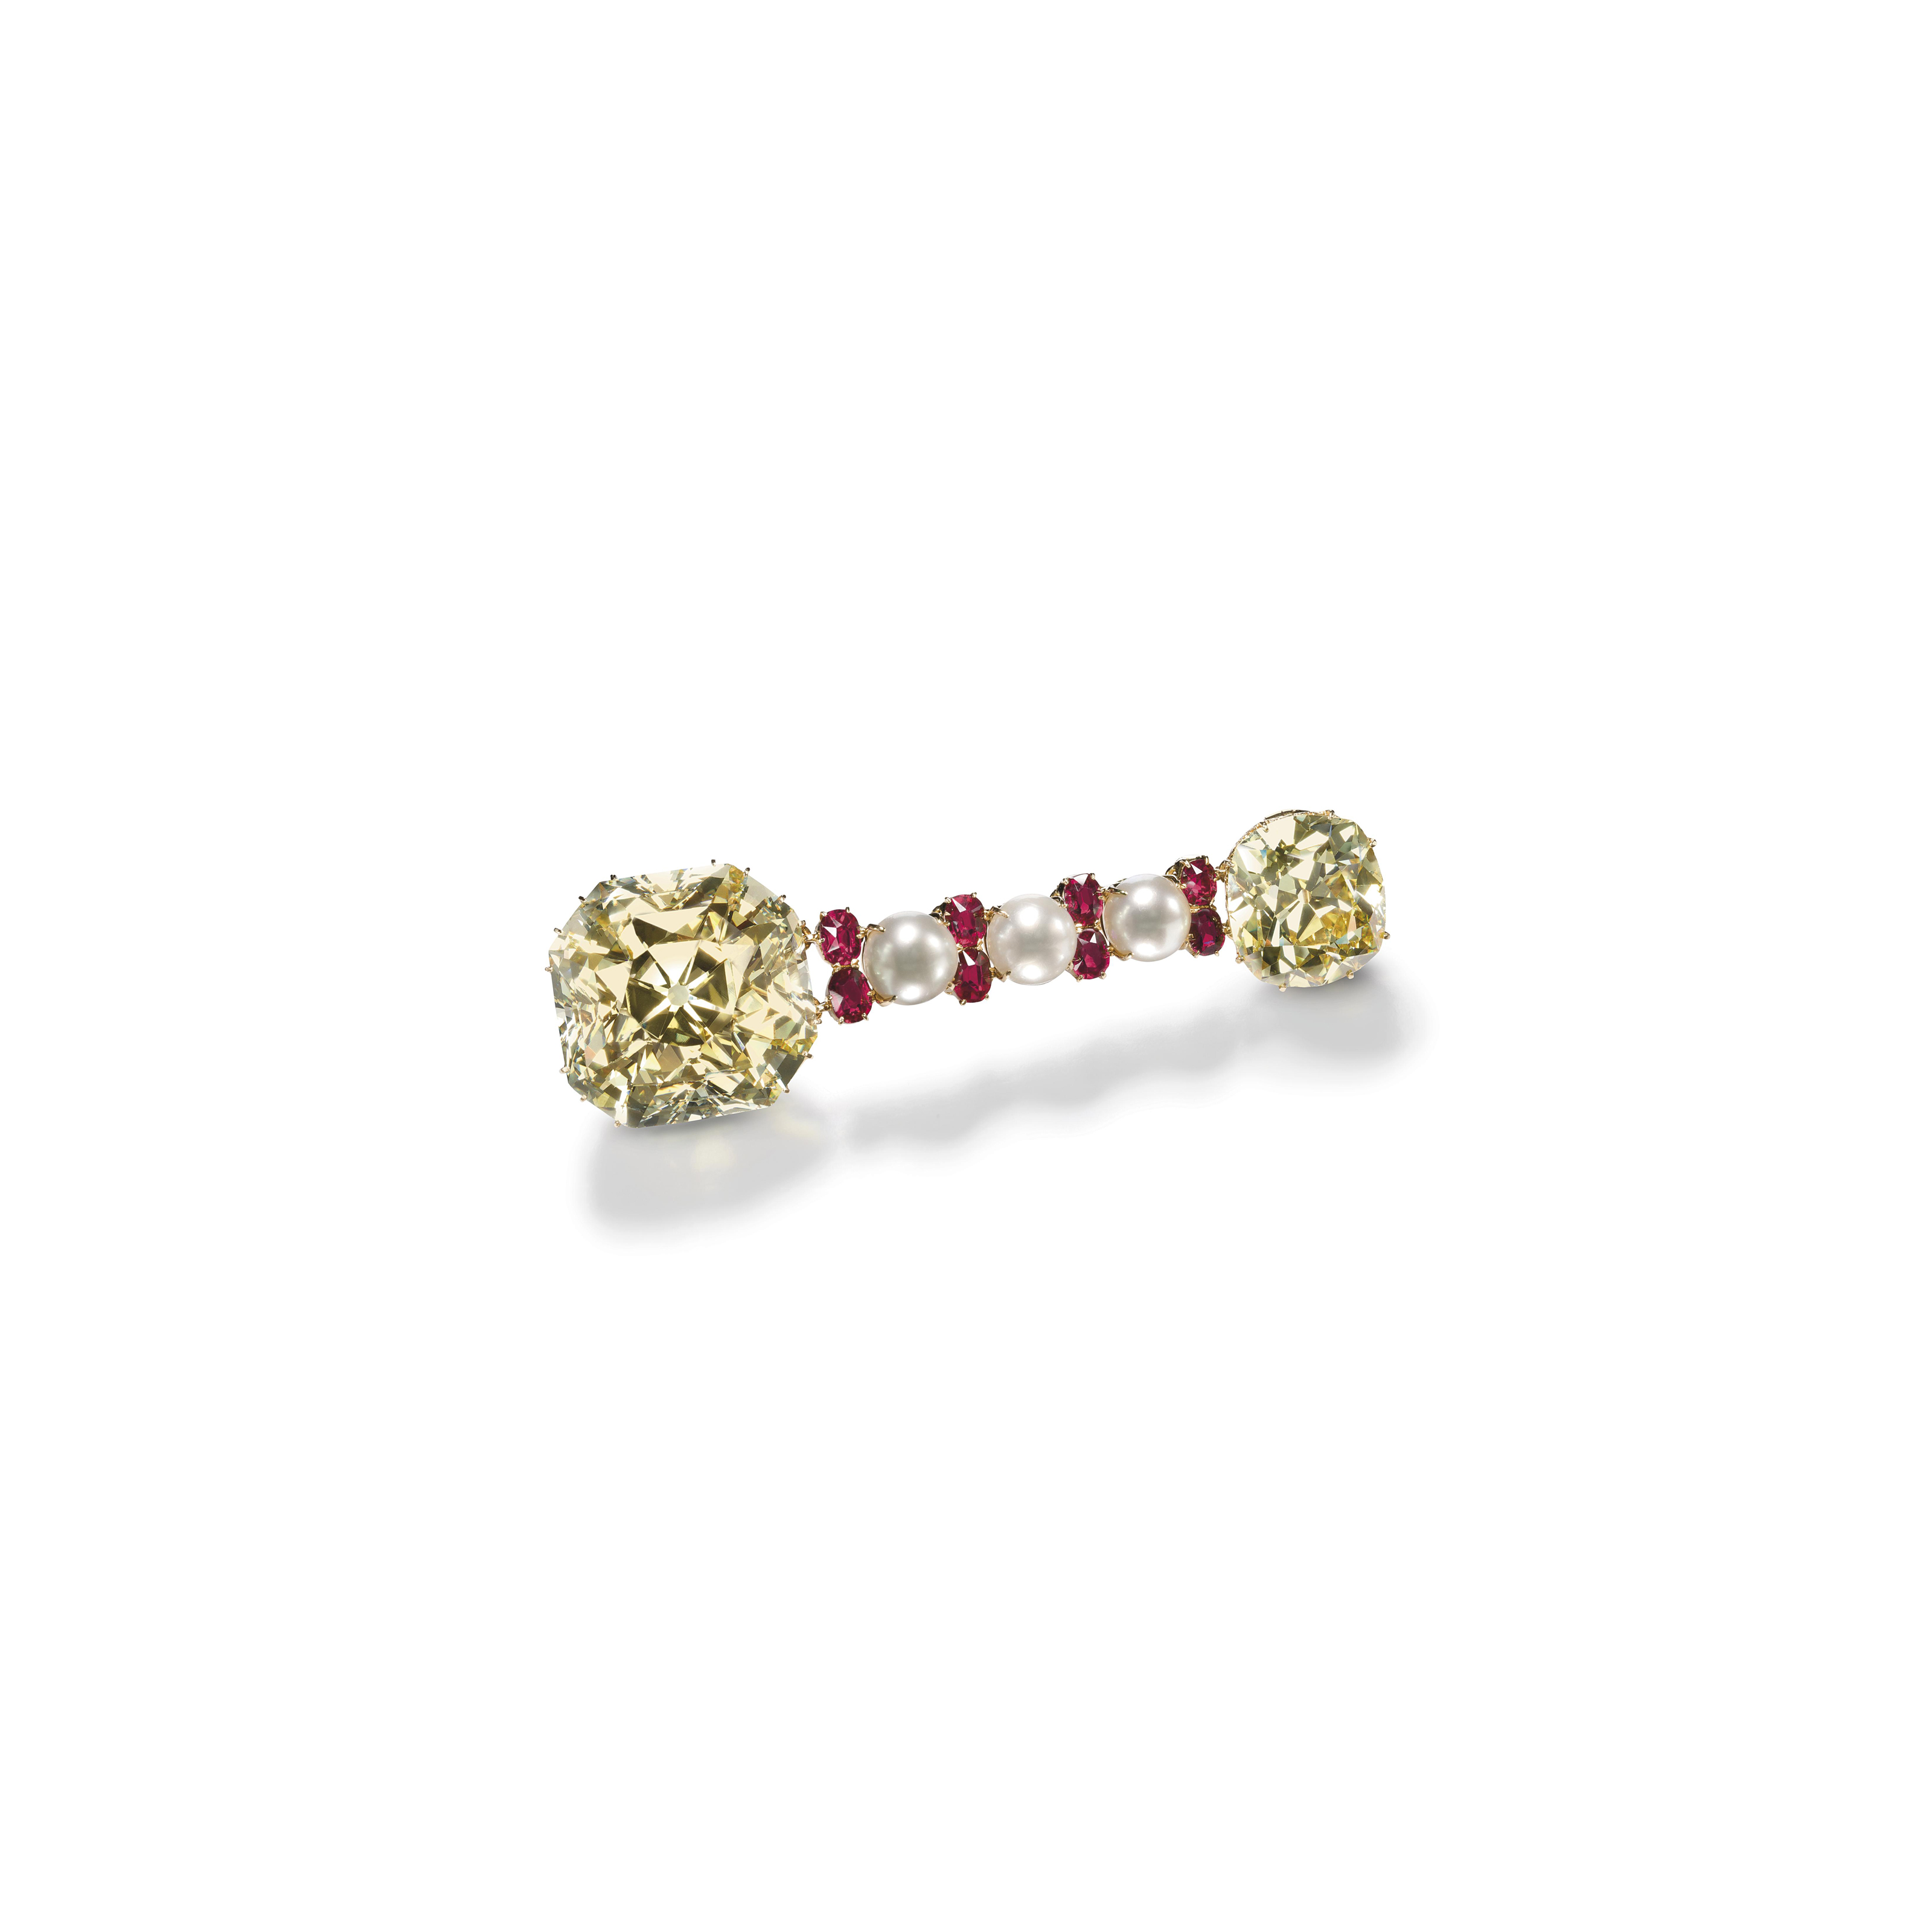 AN IMPORTANT COLOURED DIAMOND, RUBY AND CULTURED PEARL BROOCH